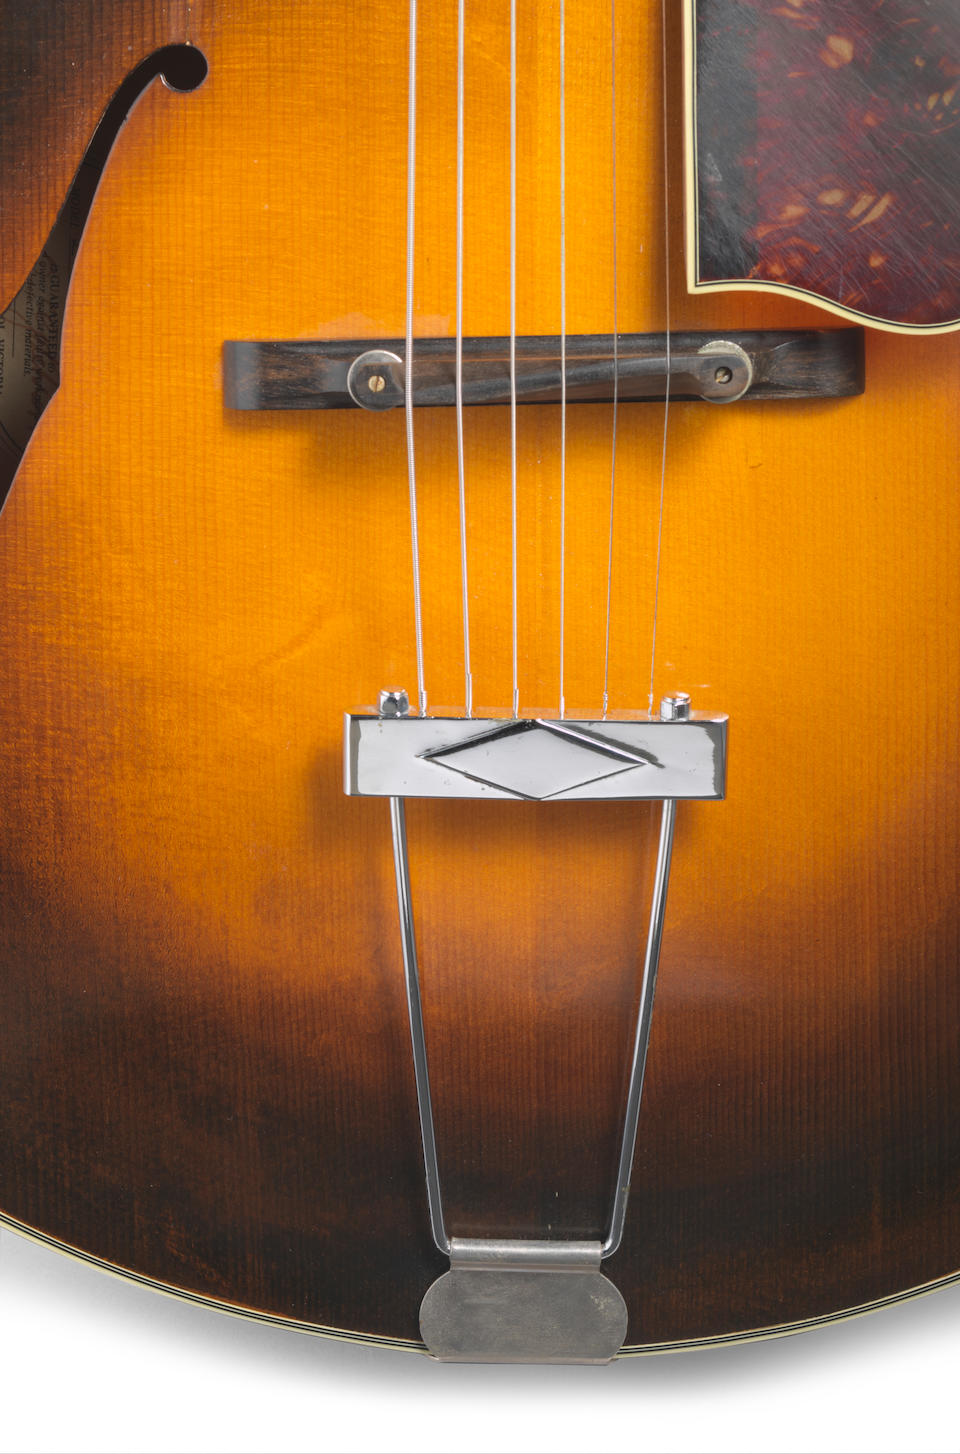 A GILCHRIST L5 ARCHTOP ACOUSTIC GUITAR OWNED AND PLAYED BY JERRY GARCIA